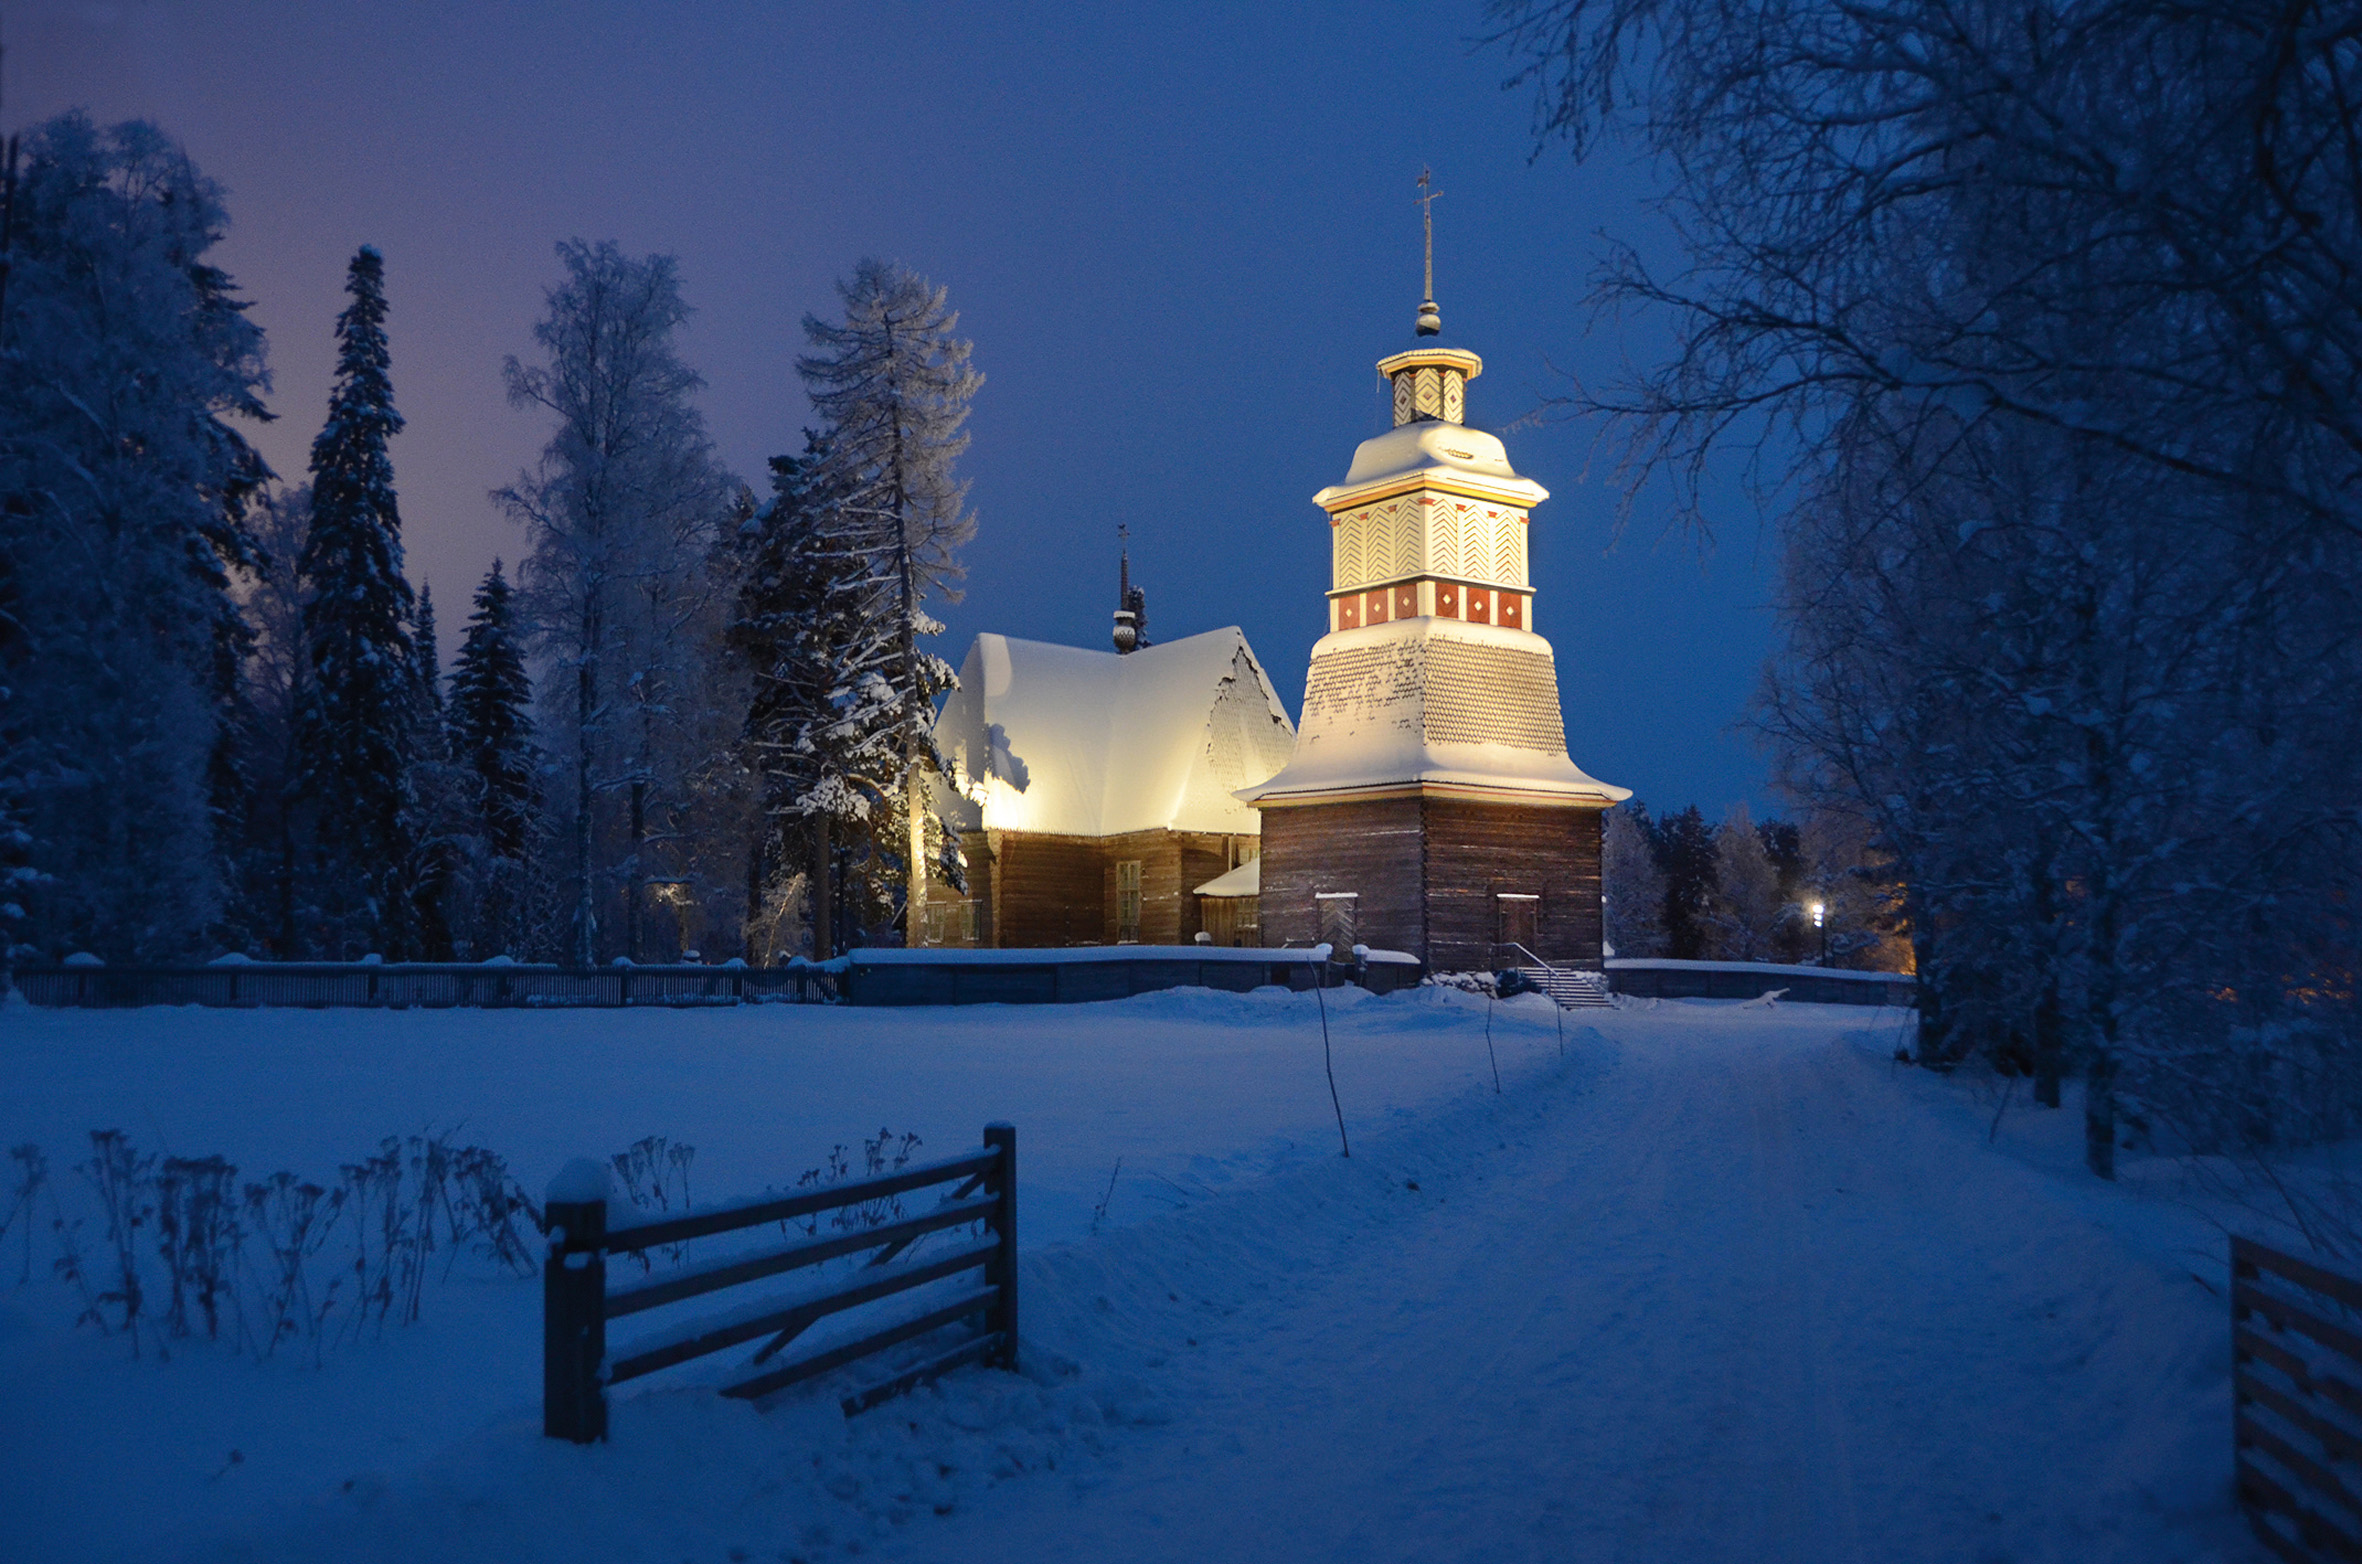 Petäjävesi Old Church in winter time